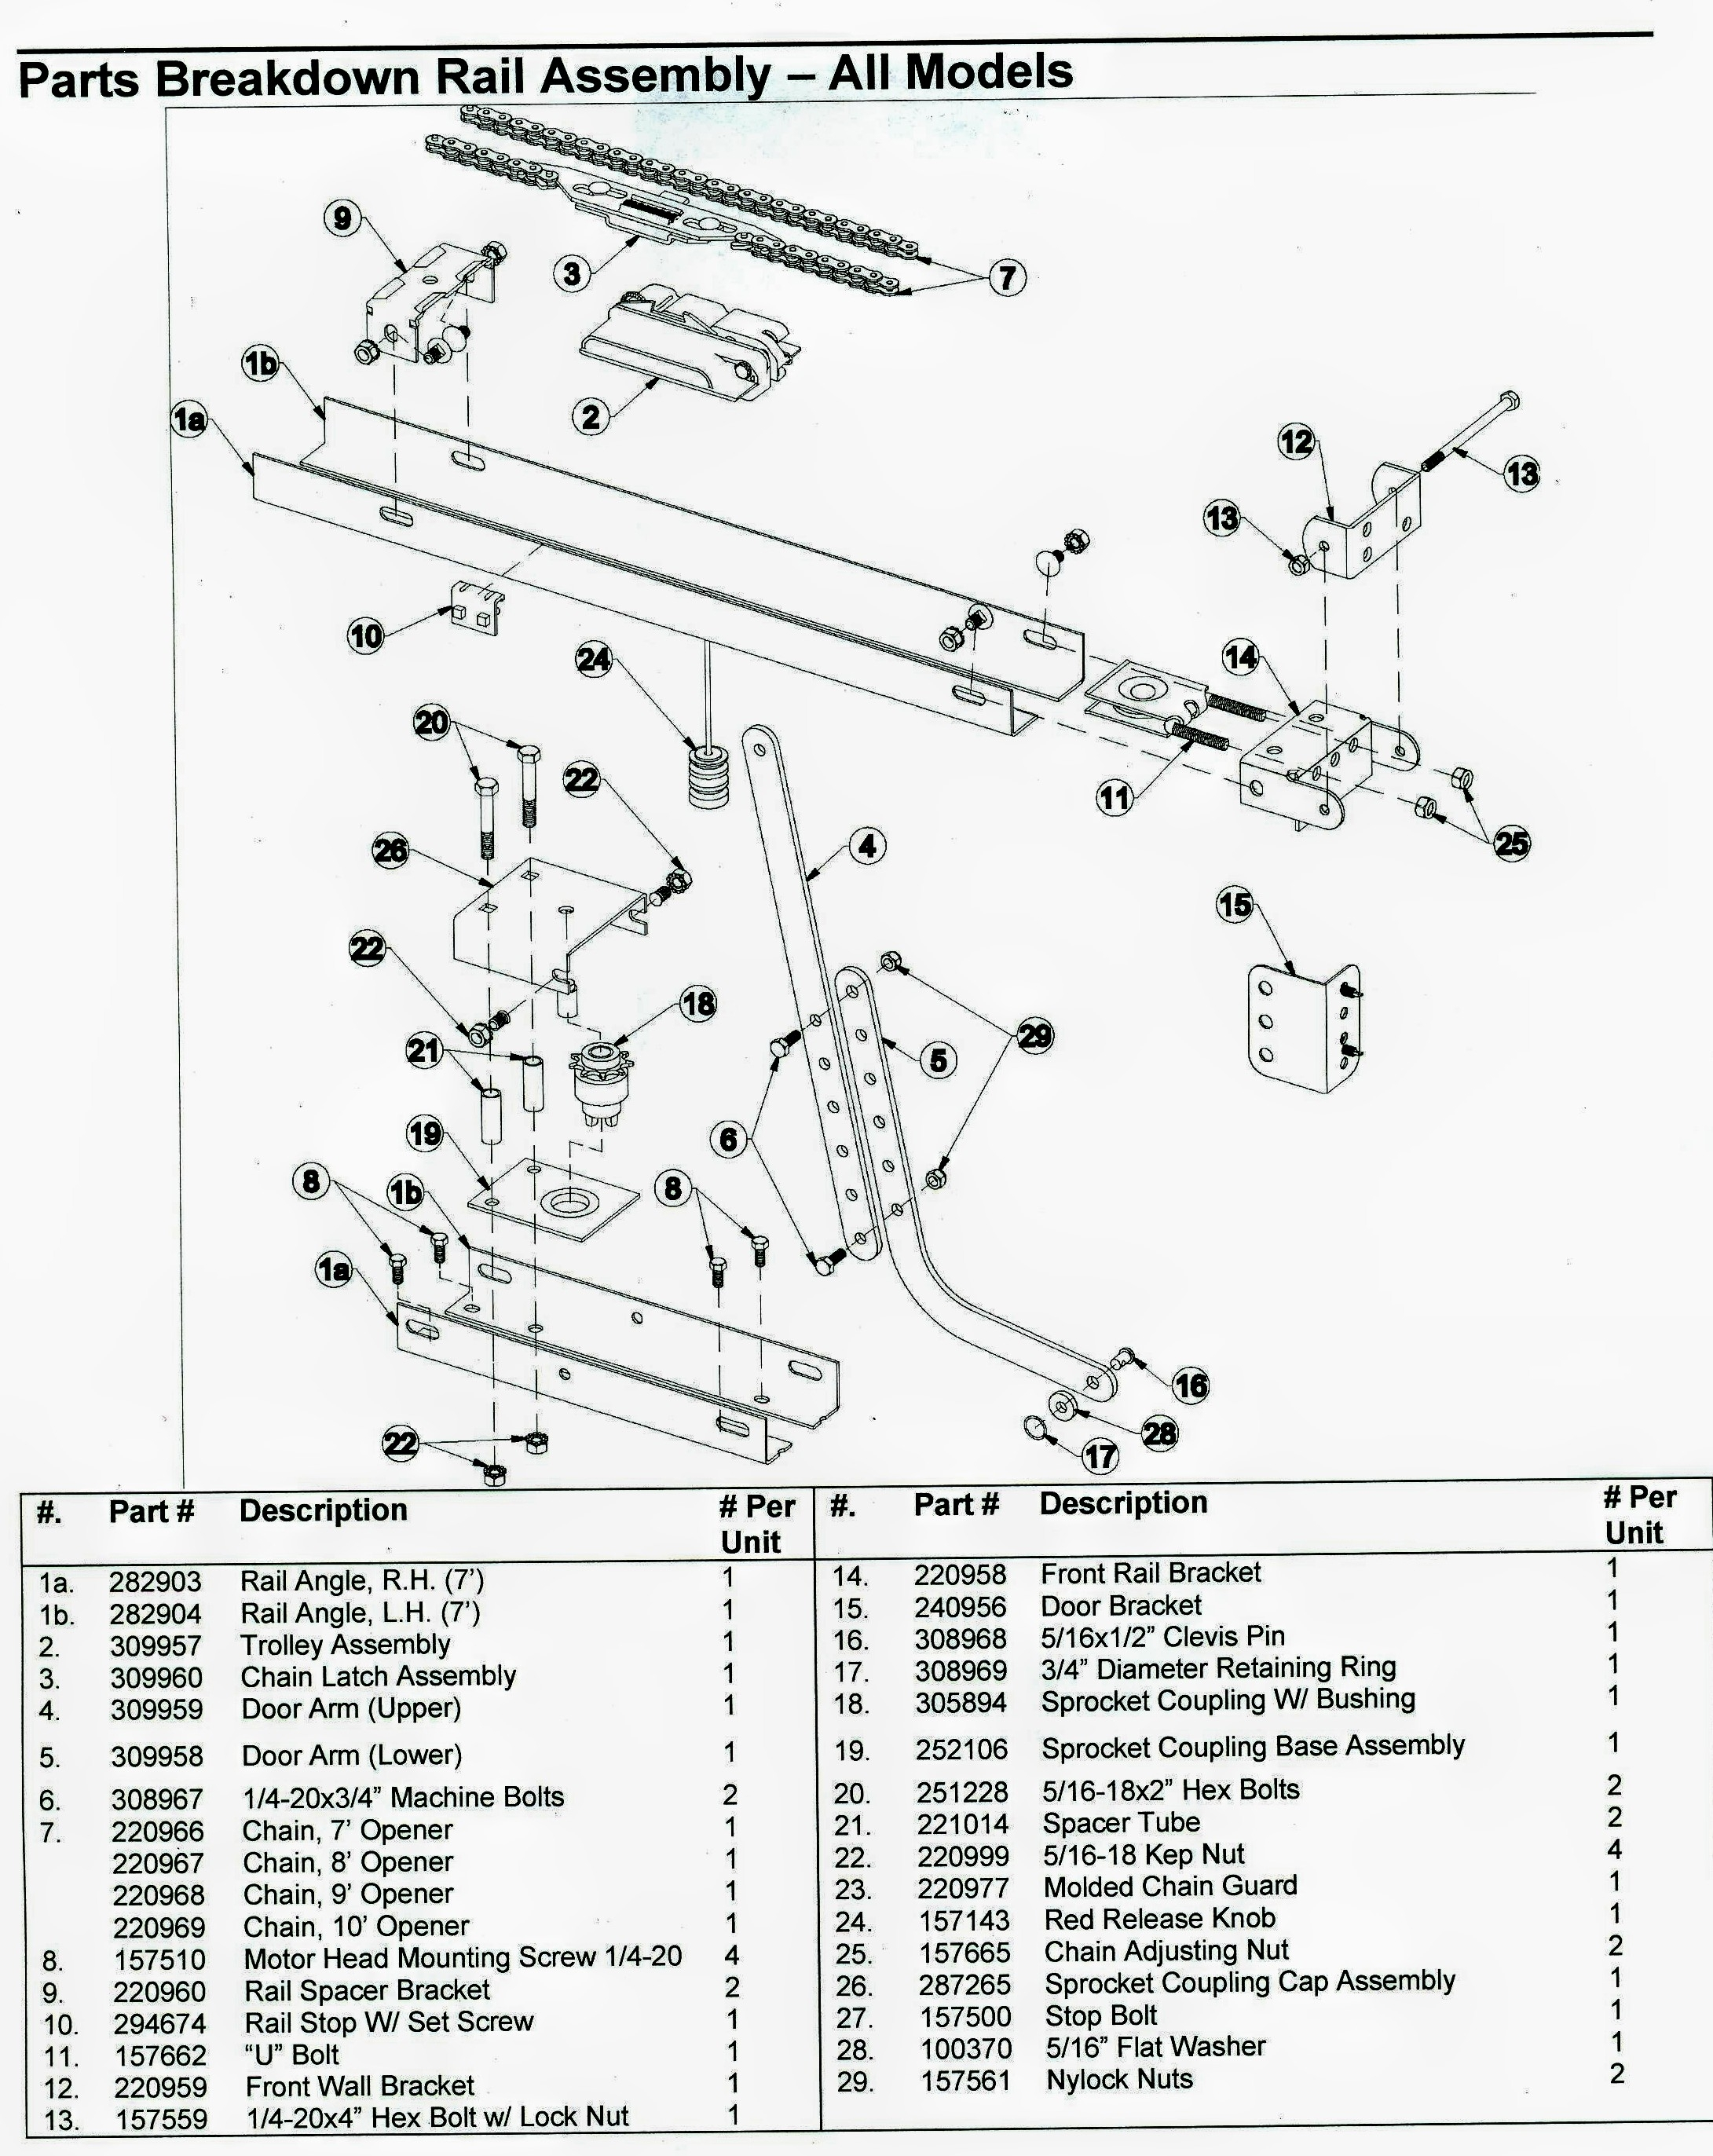 wiring diagram for liftmaster garage door opener on free throughout chamberlain garage door opener parts diagram wiring diagram for liftmaster garage door opener on free garage wiring diagram at eliteediting.co